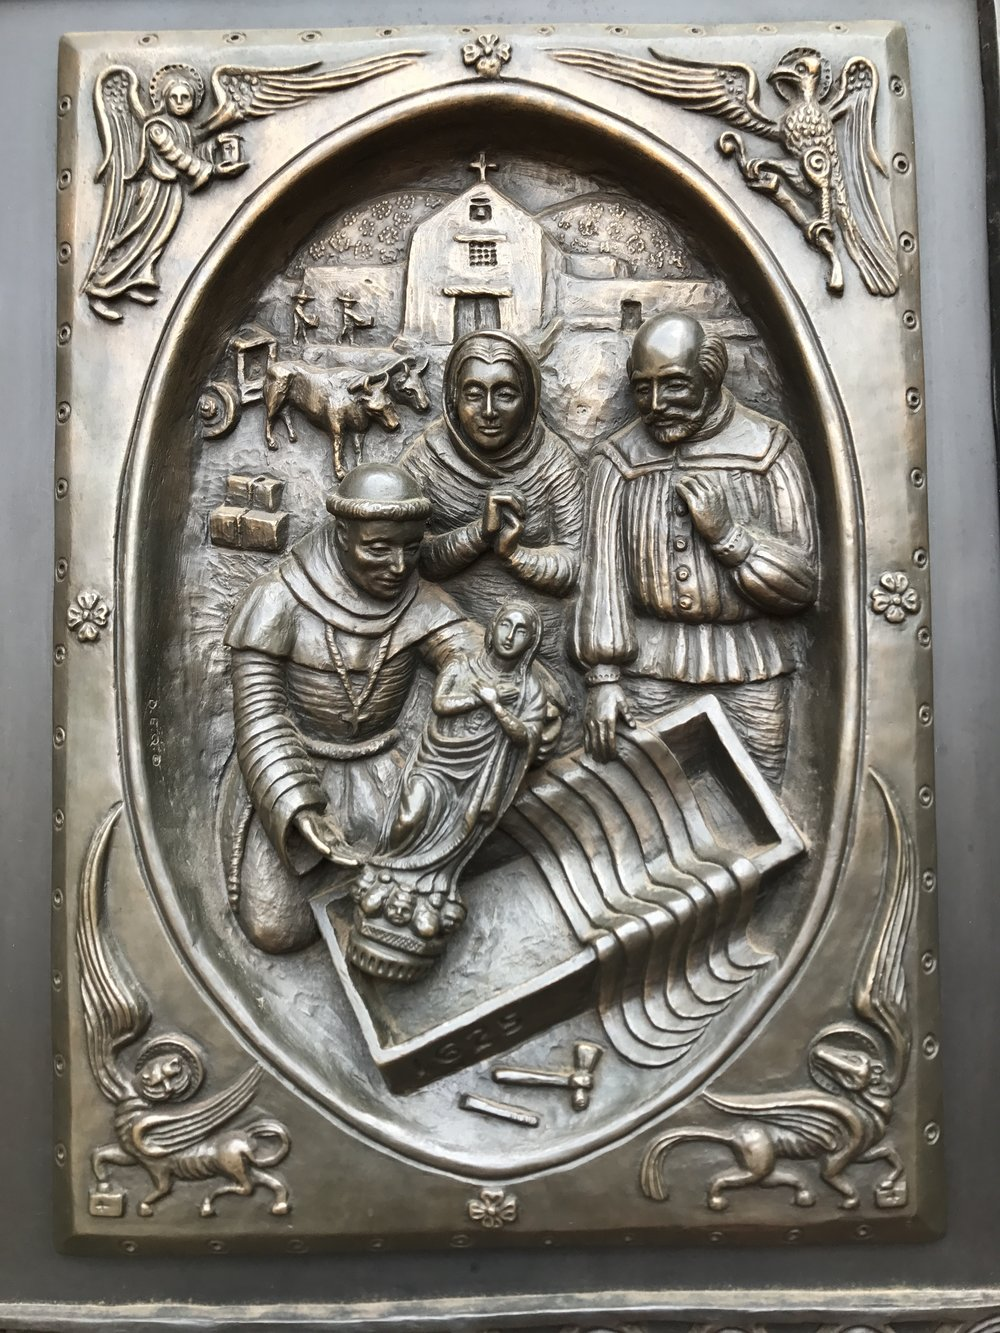 one of the images on the front doors of the church